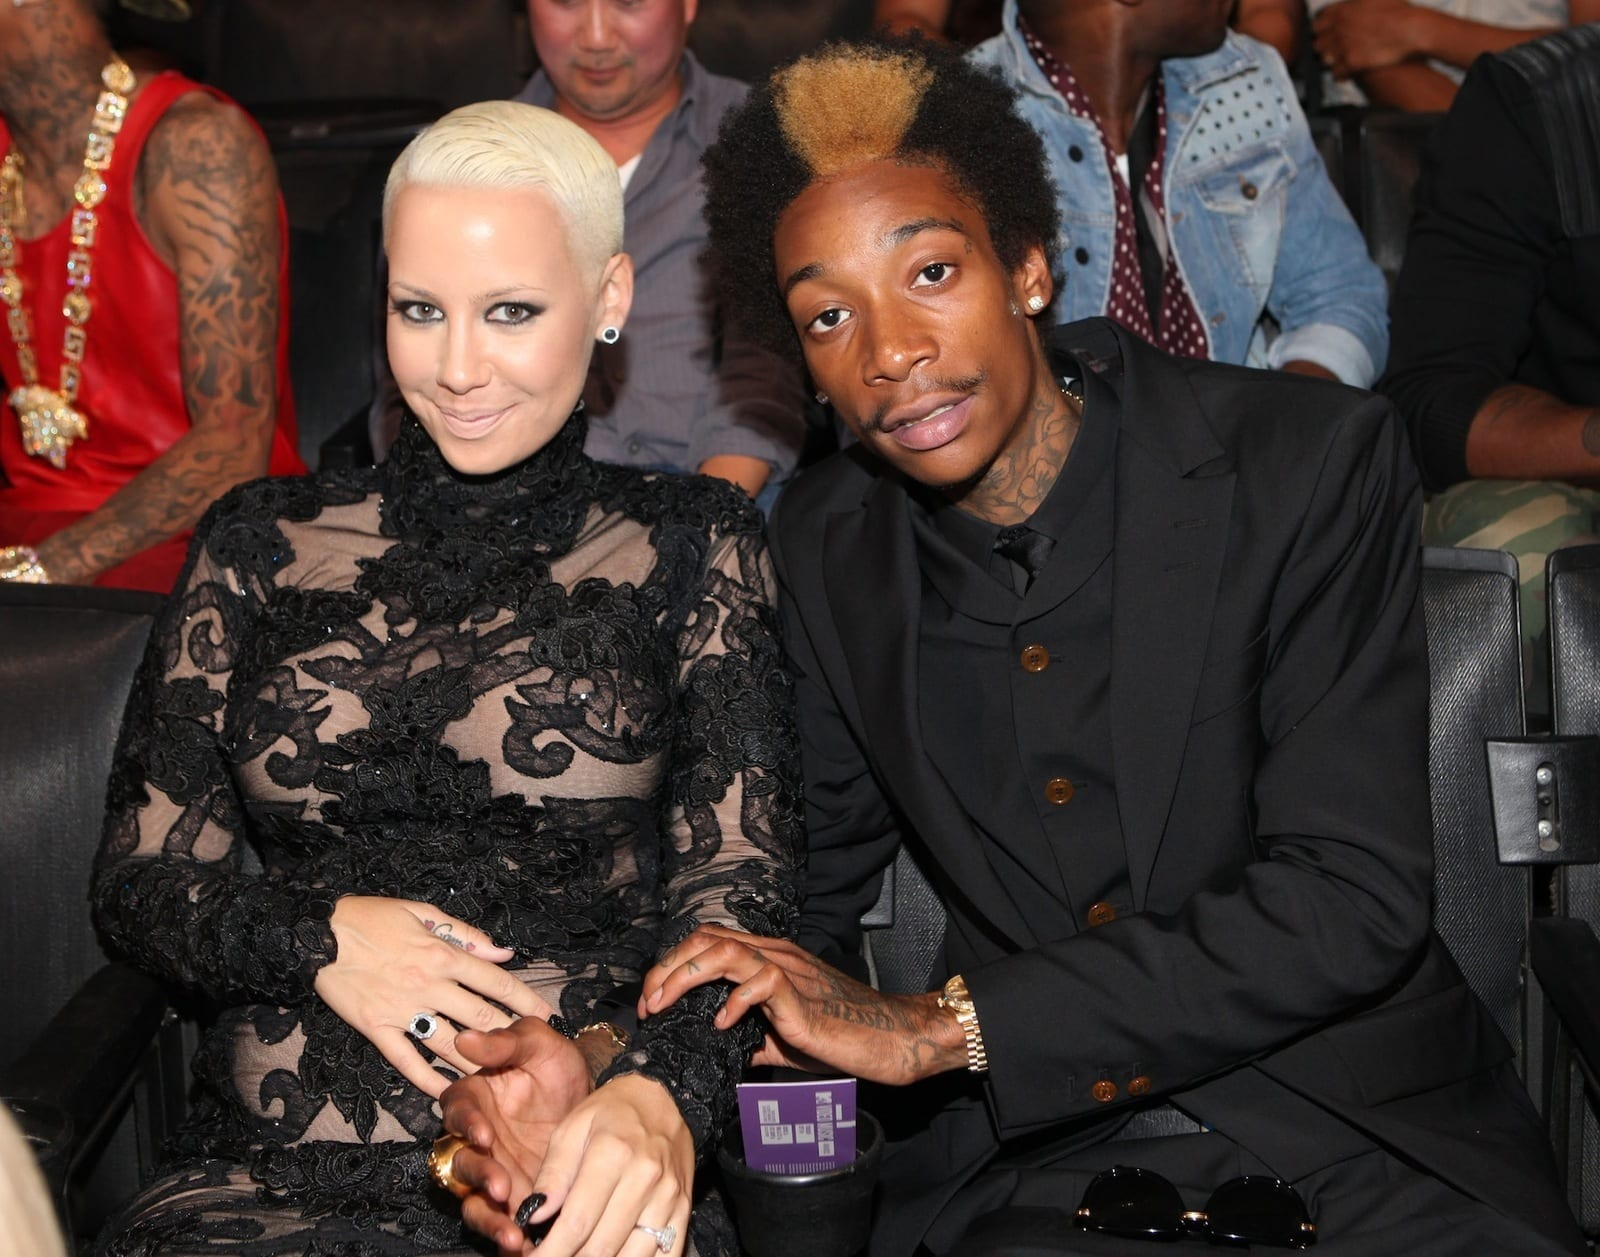 55328ae3d9332 Amber Rose and Wiz Khalifa to Teach Son About Pot - The Hollywood Gossip